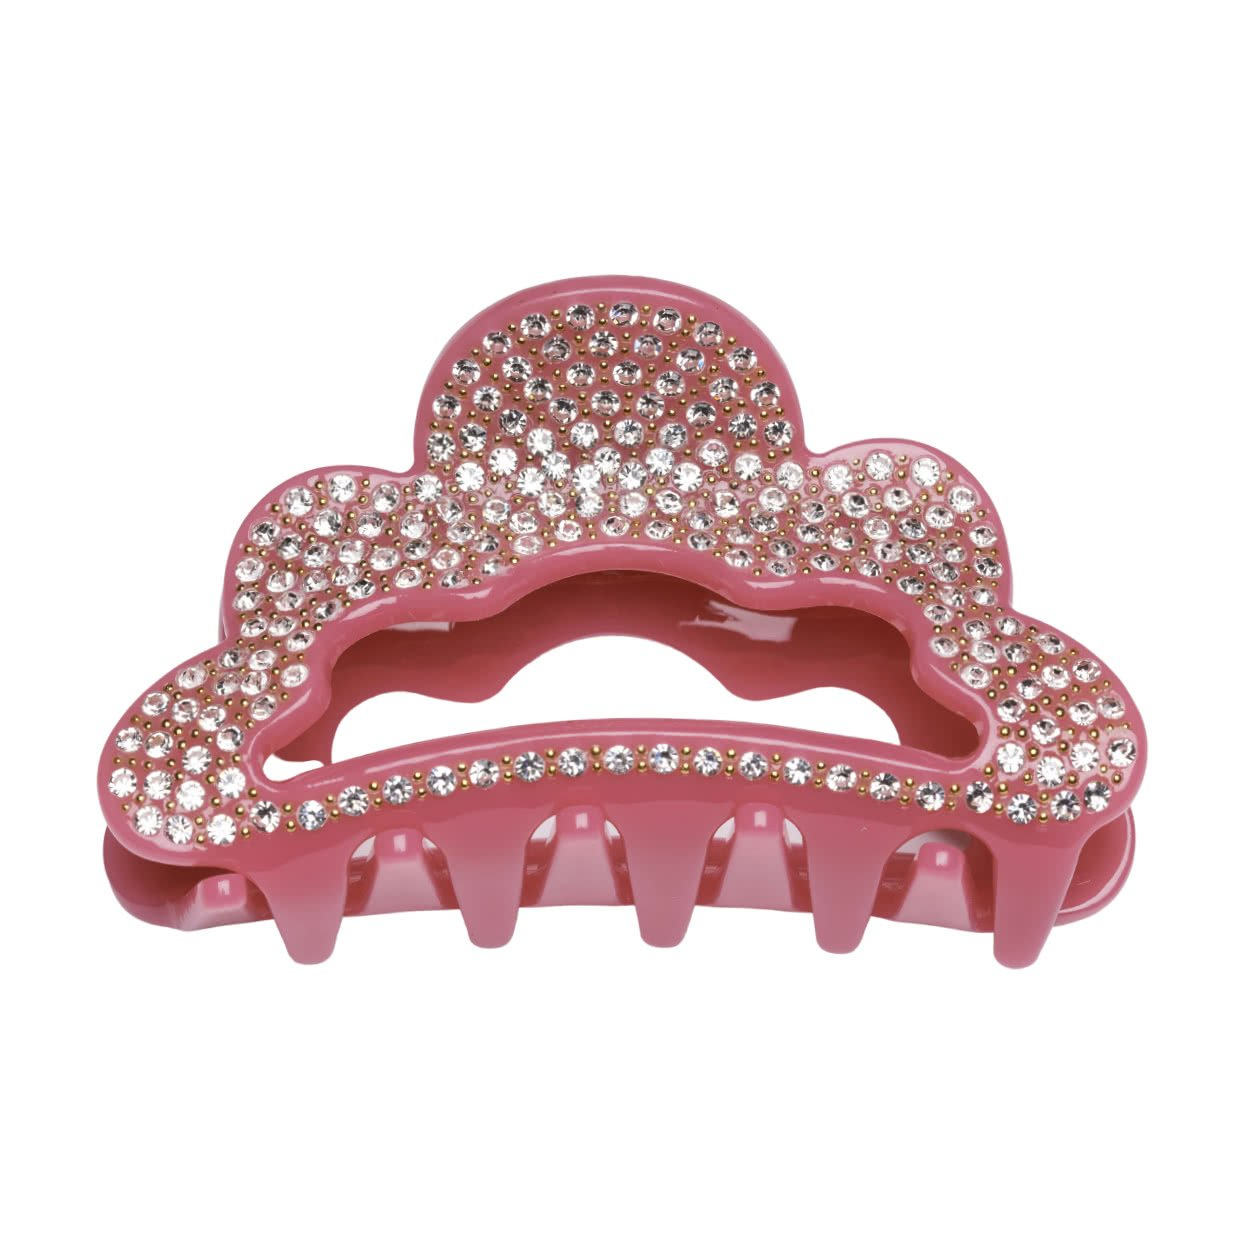 Image of Milledeux® Large Hair Claw with crystals - dark pink